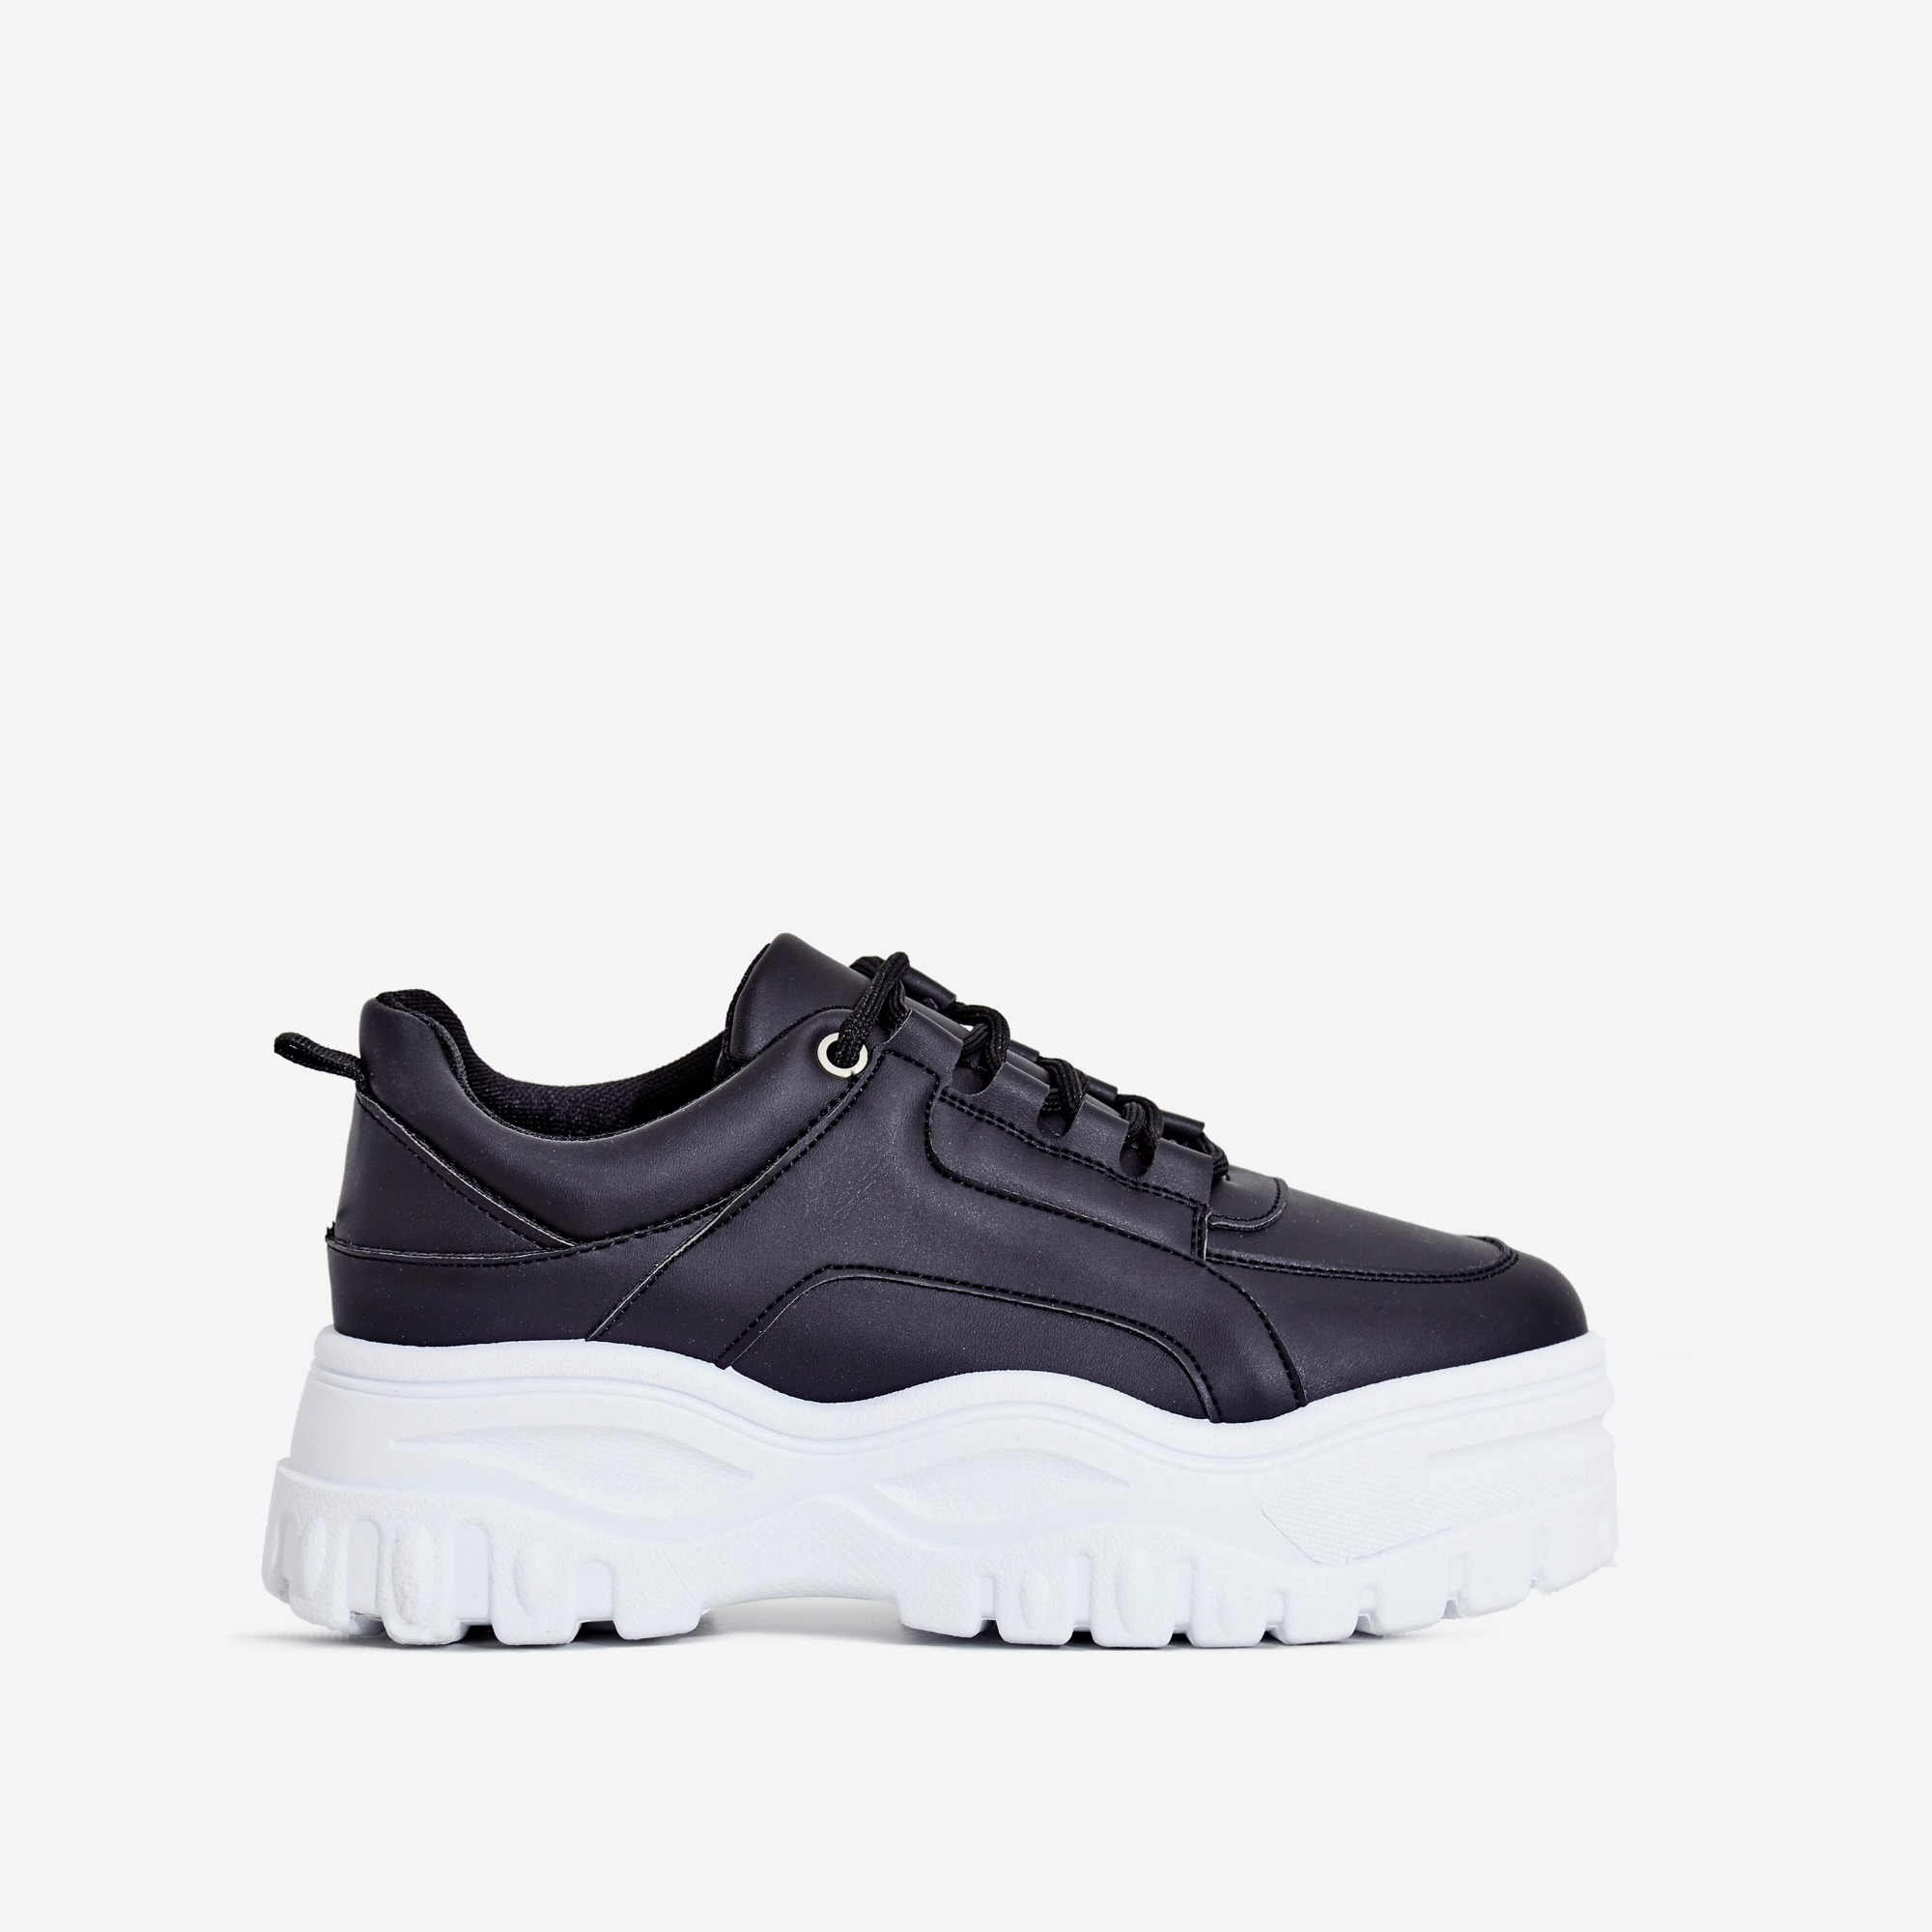 Tye Chunky Sole Trainer In Black